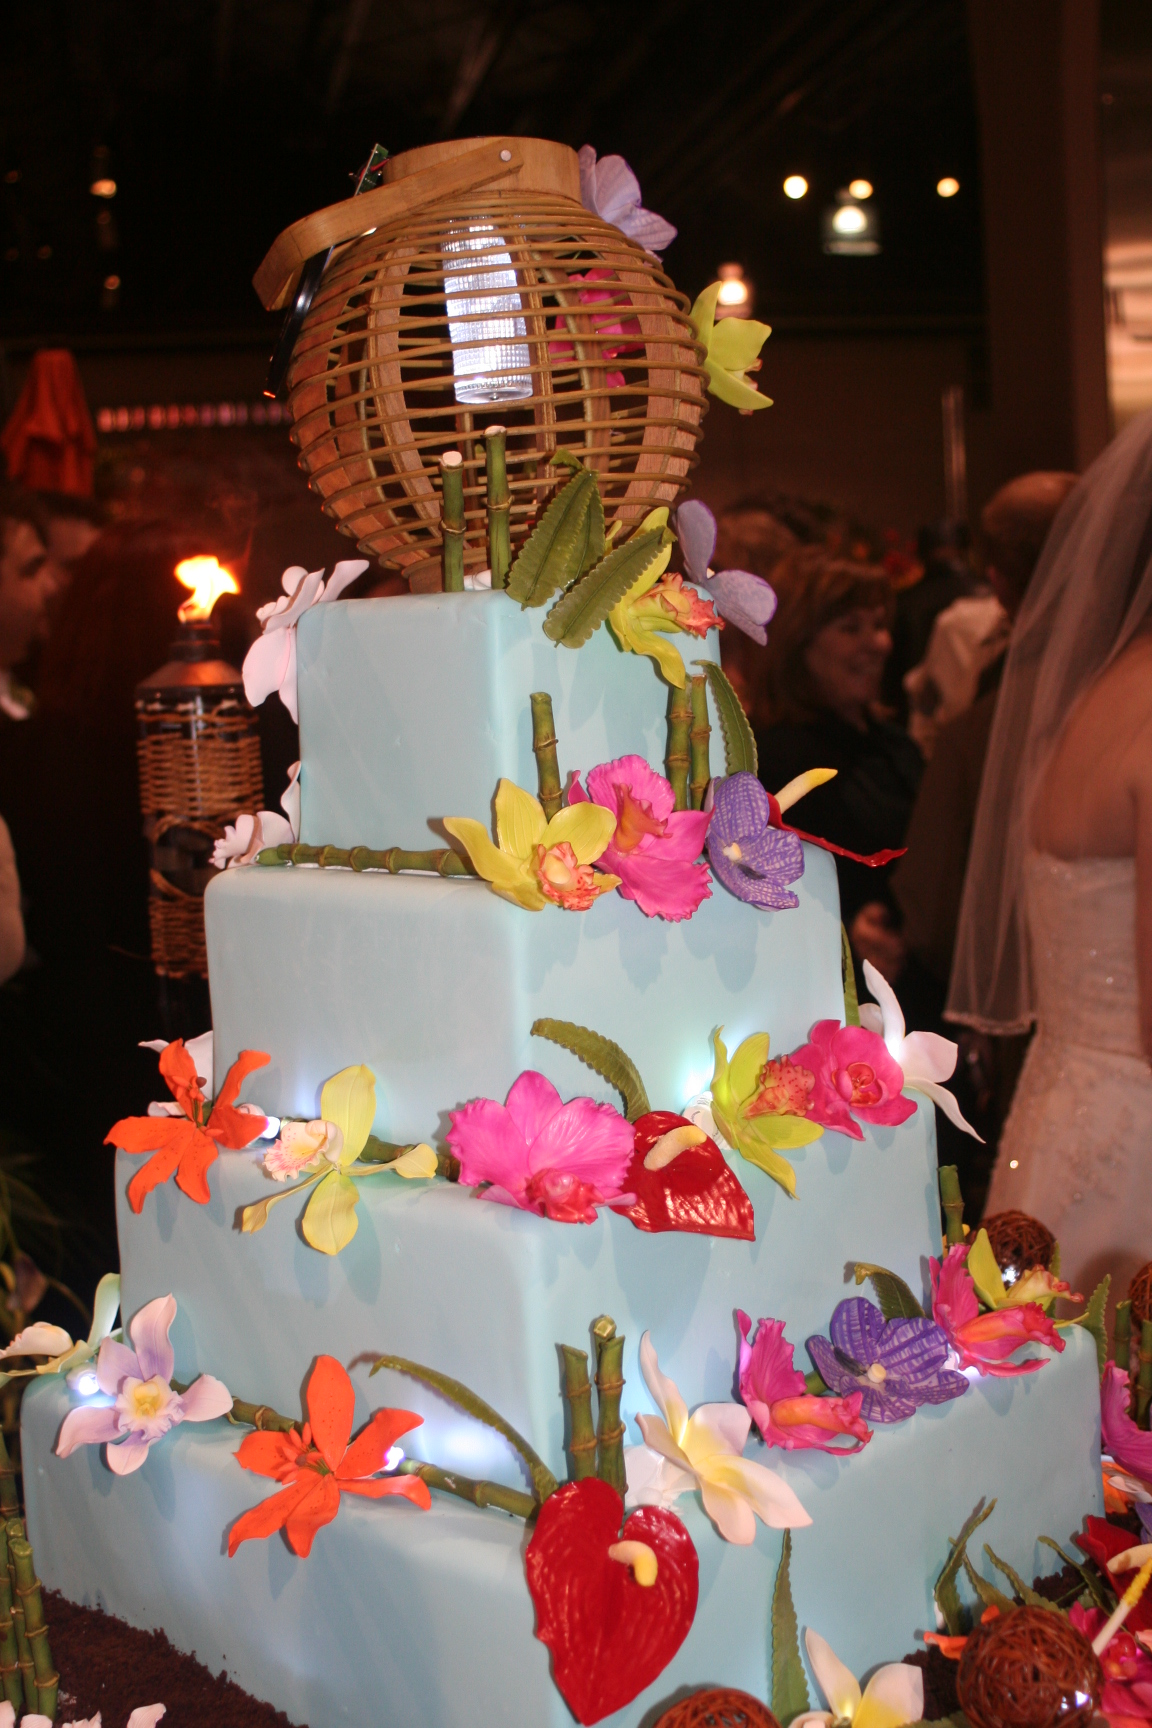 Cake Art Tv Show : Watch the Flower Show Episode of ?Cake Boss? The ...